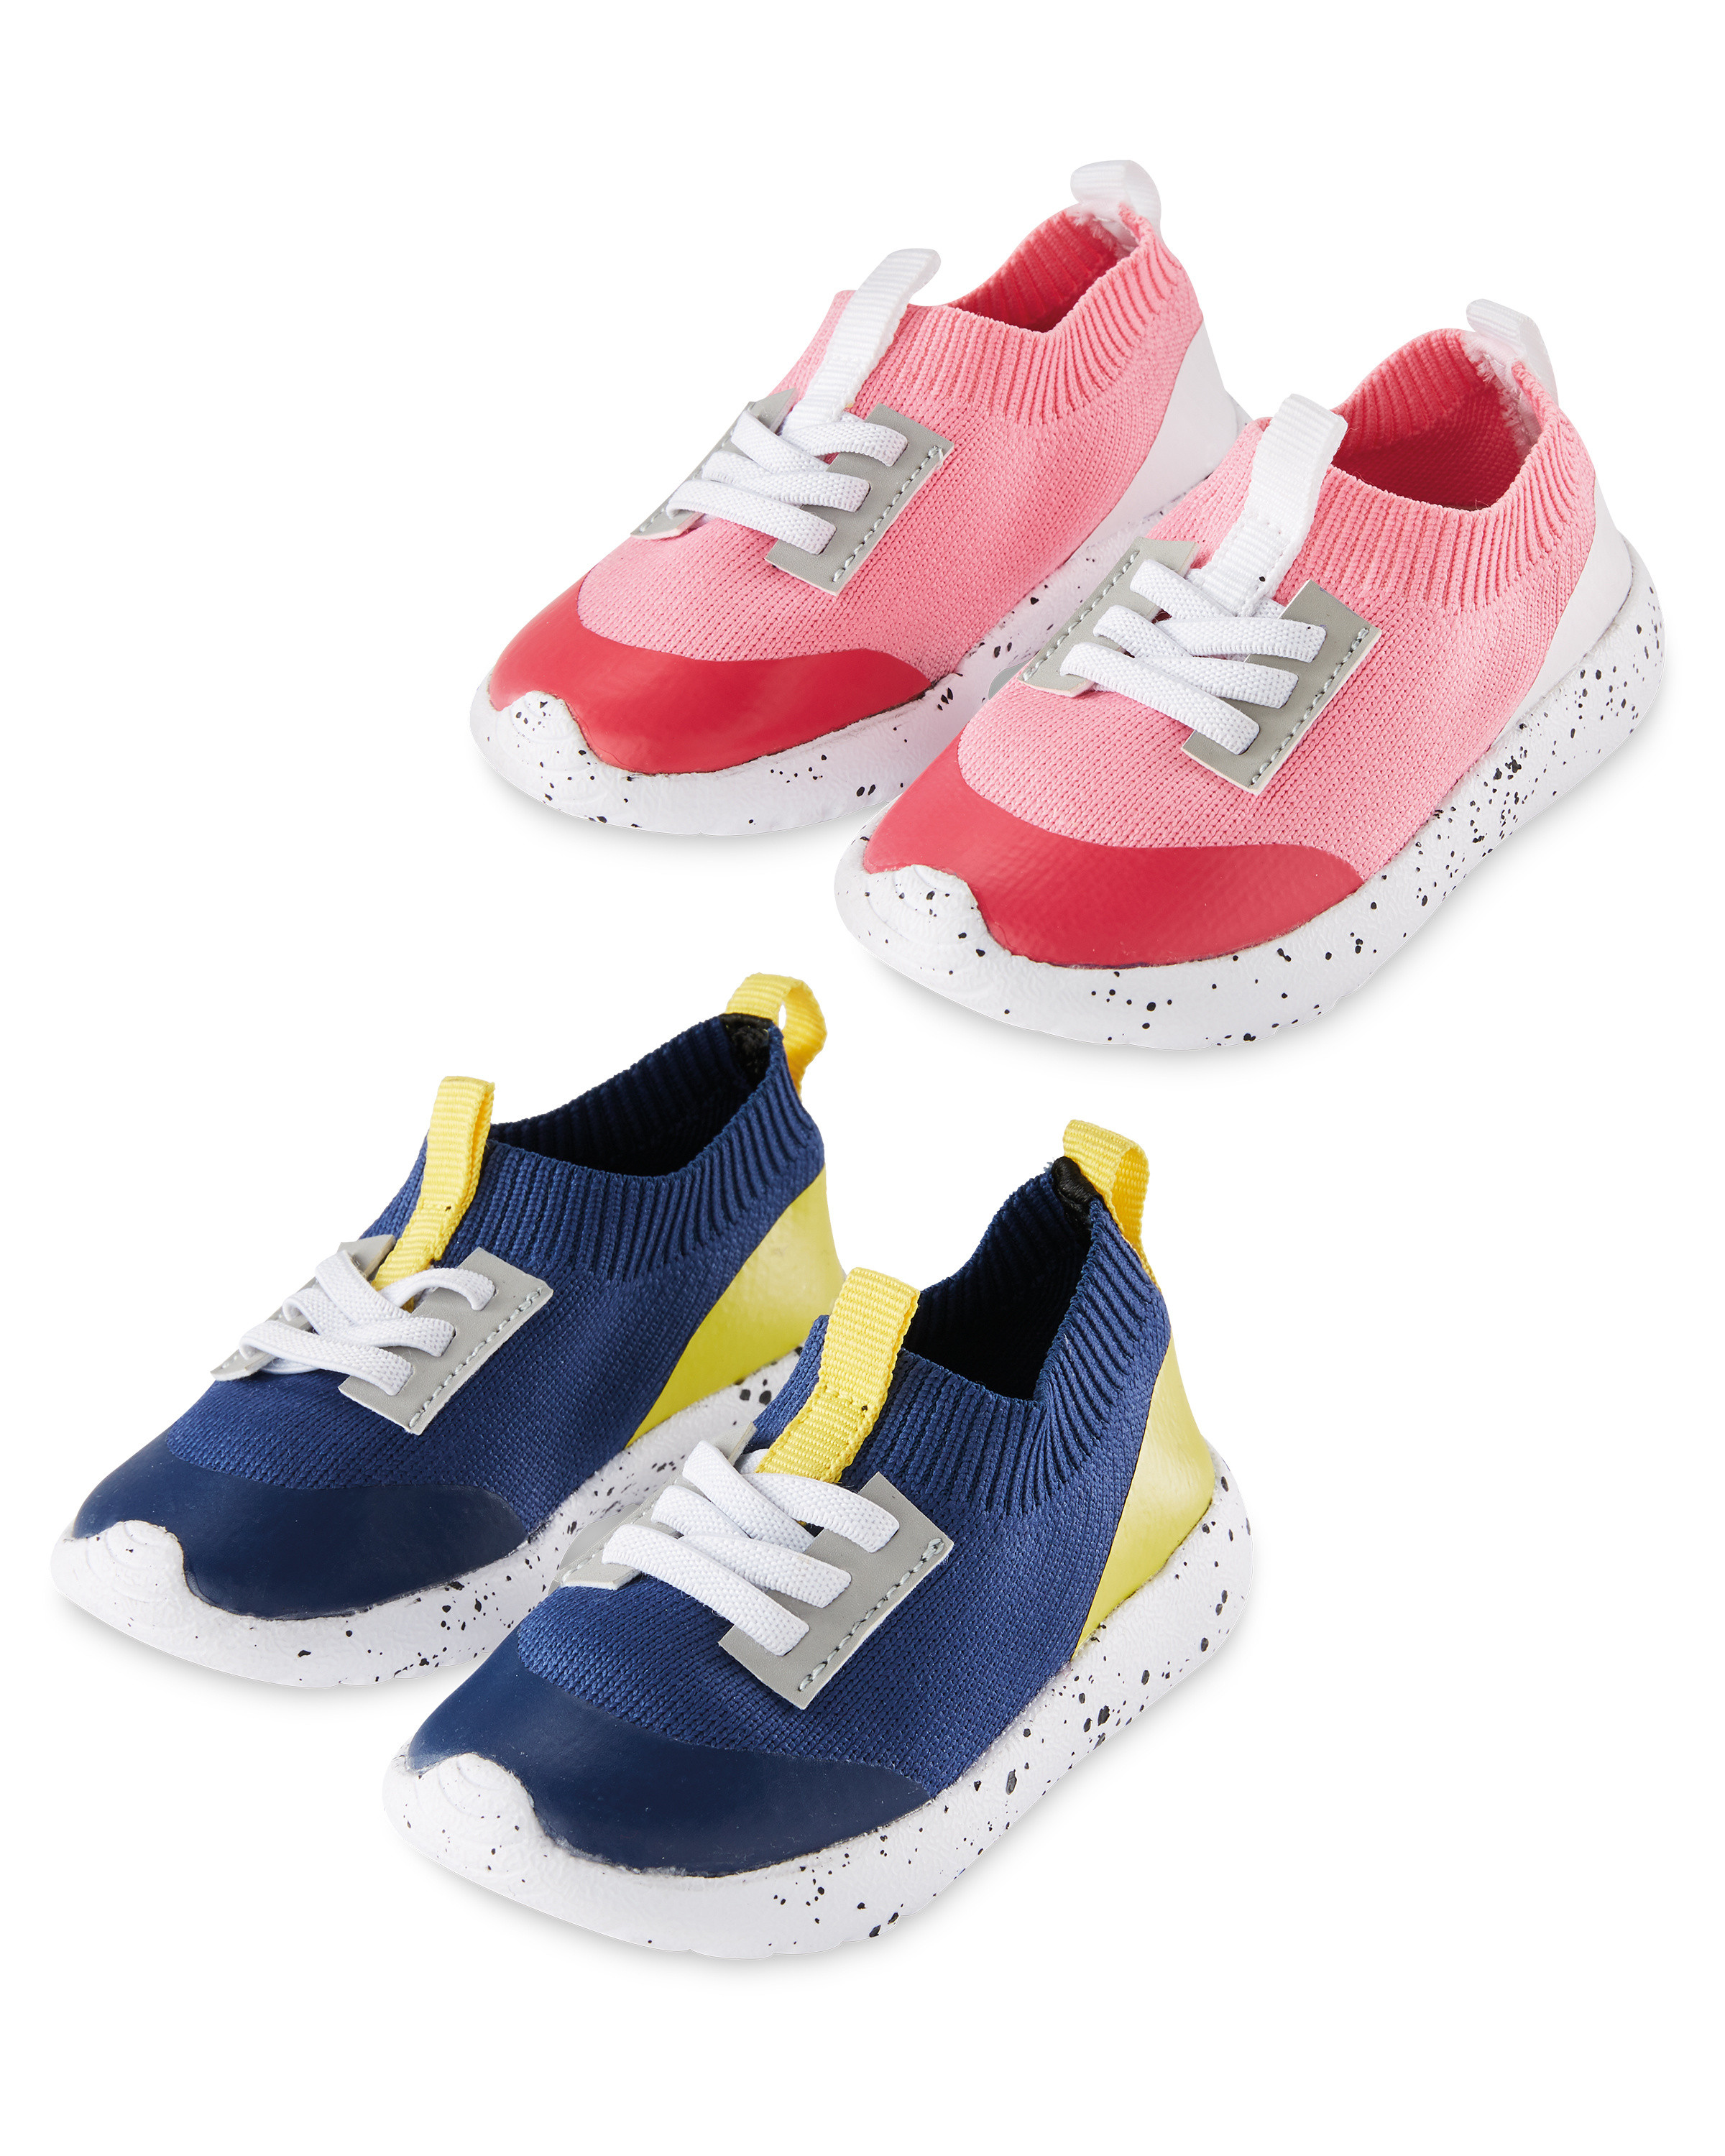 928b1fc7616be Lily & Dan Baby/Toddler Trainers - ALDI UK